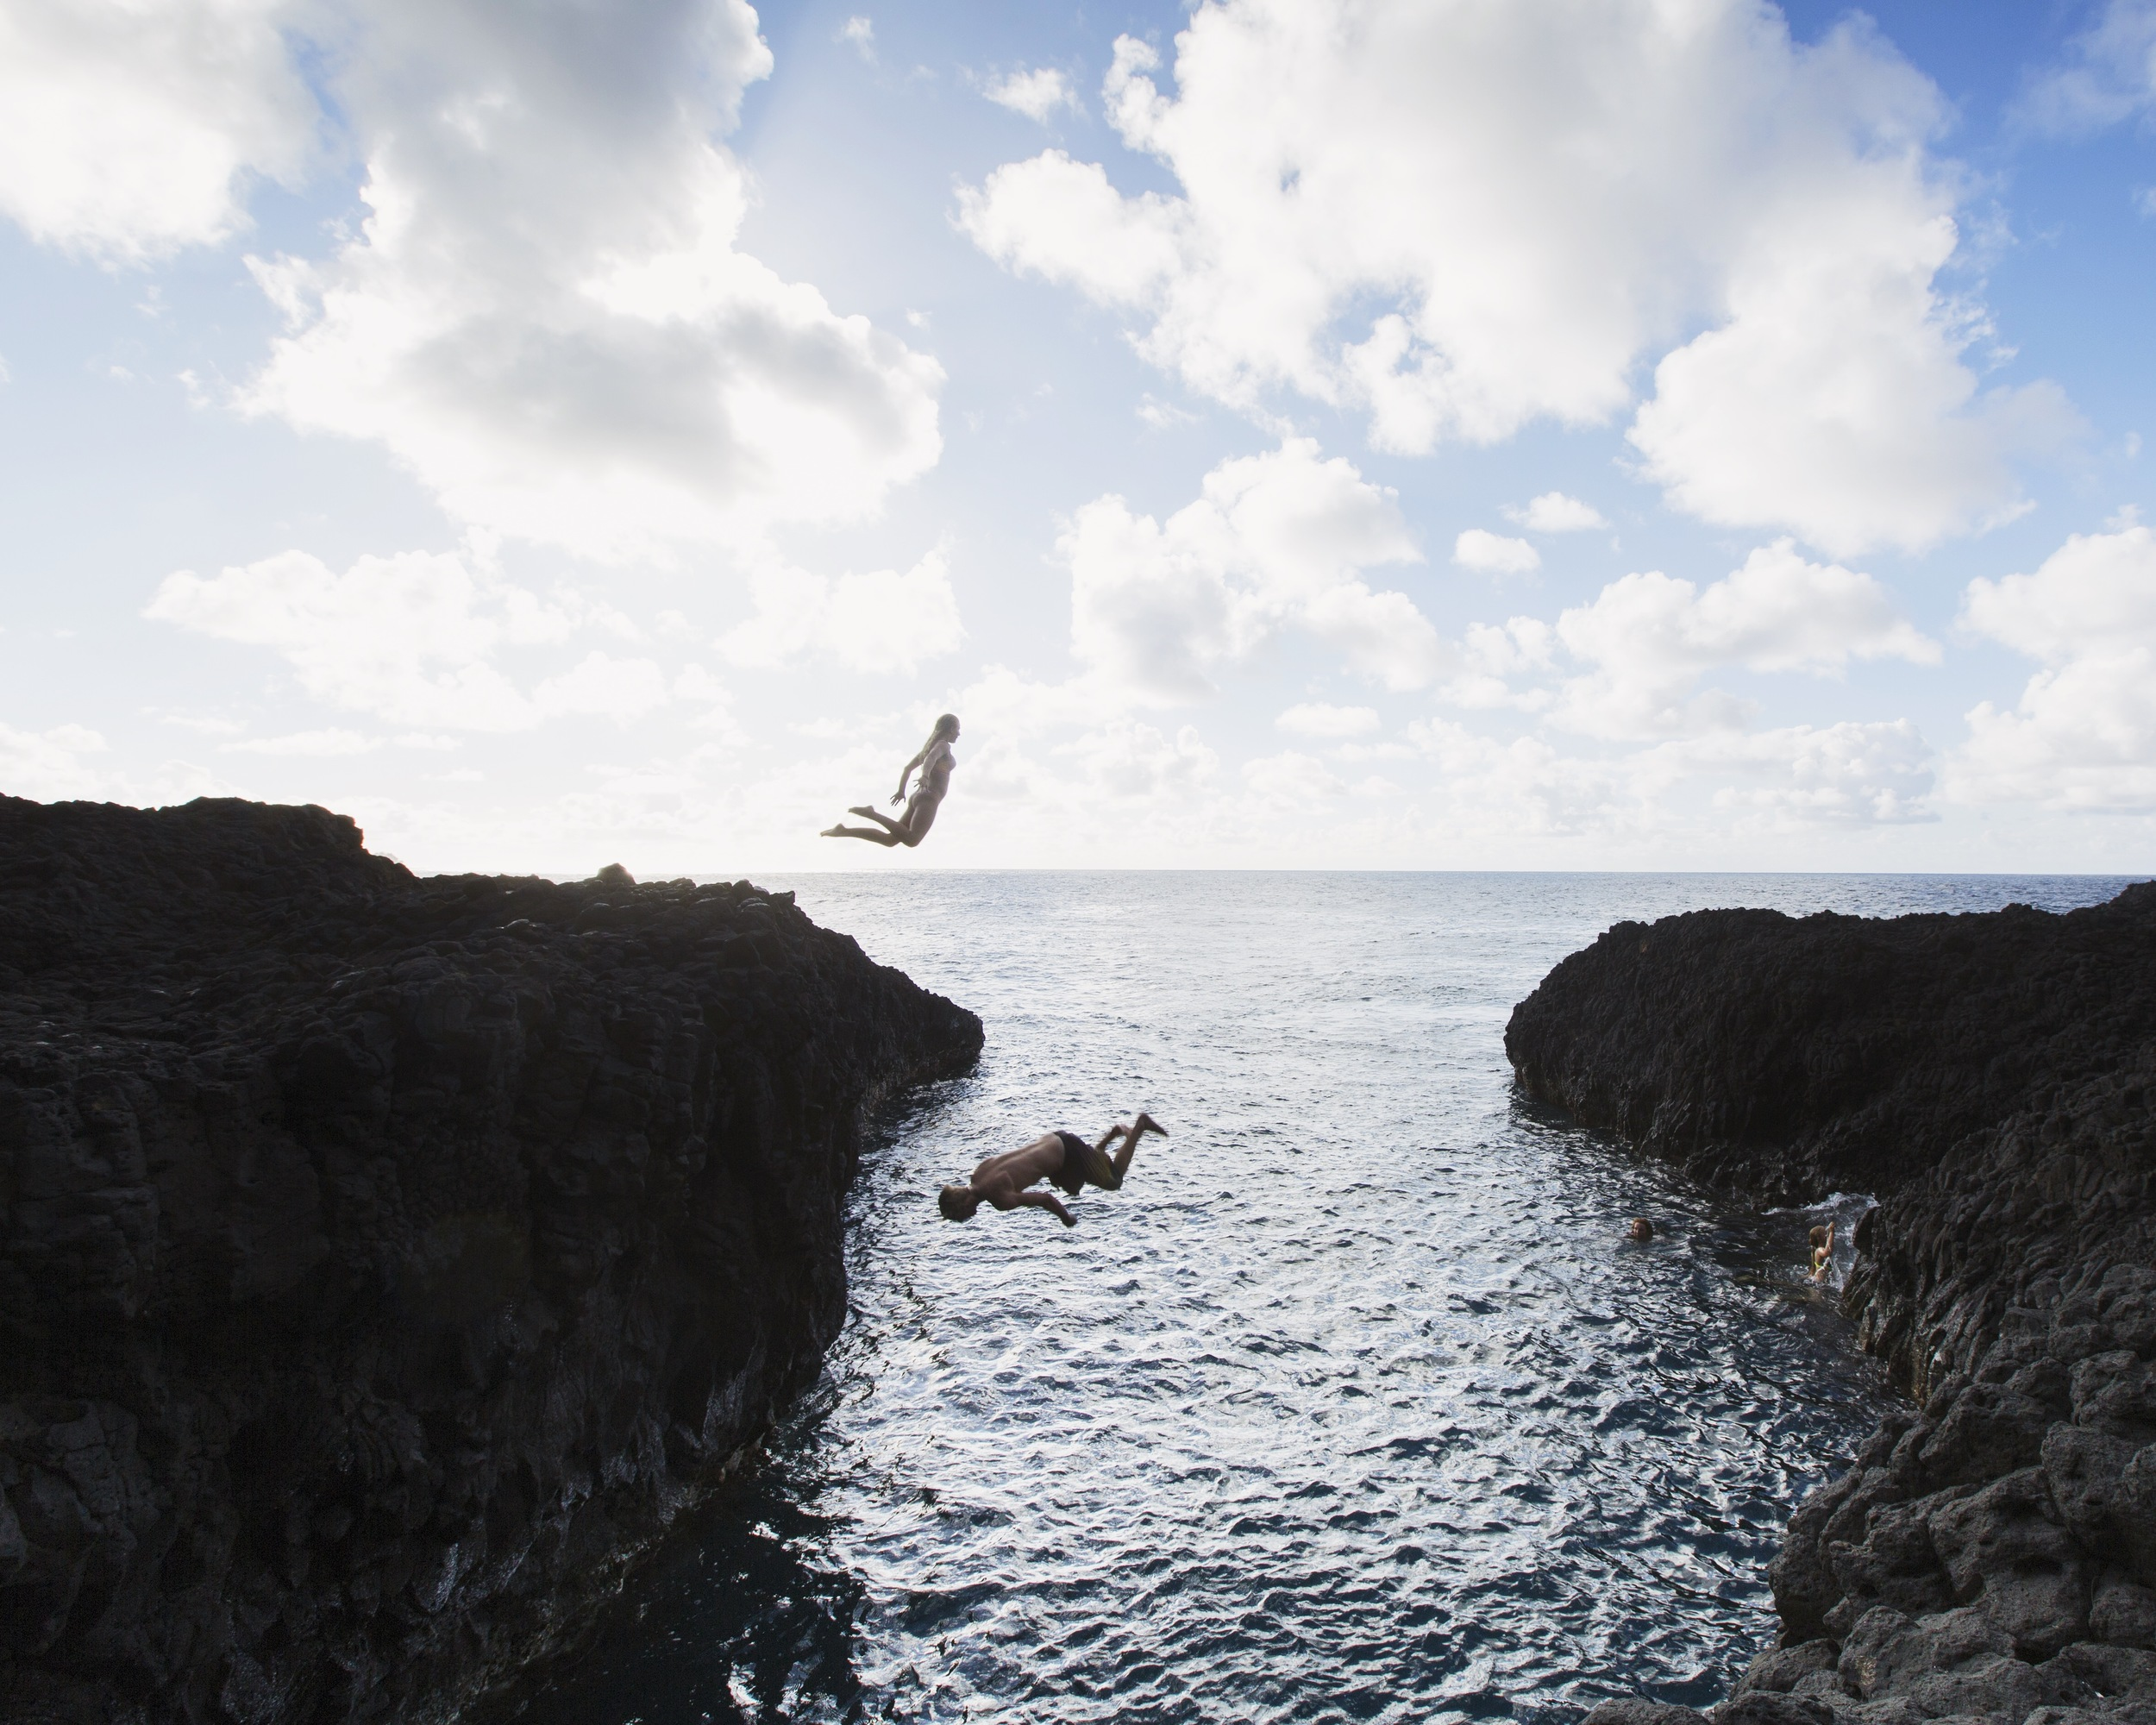 Two people jumping into the Pacific Ocean